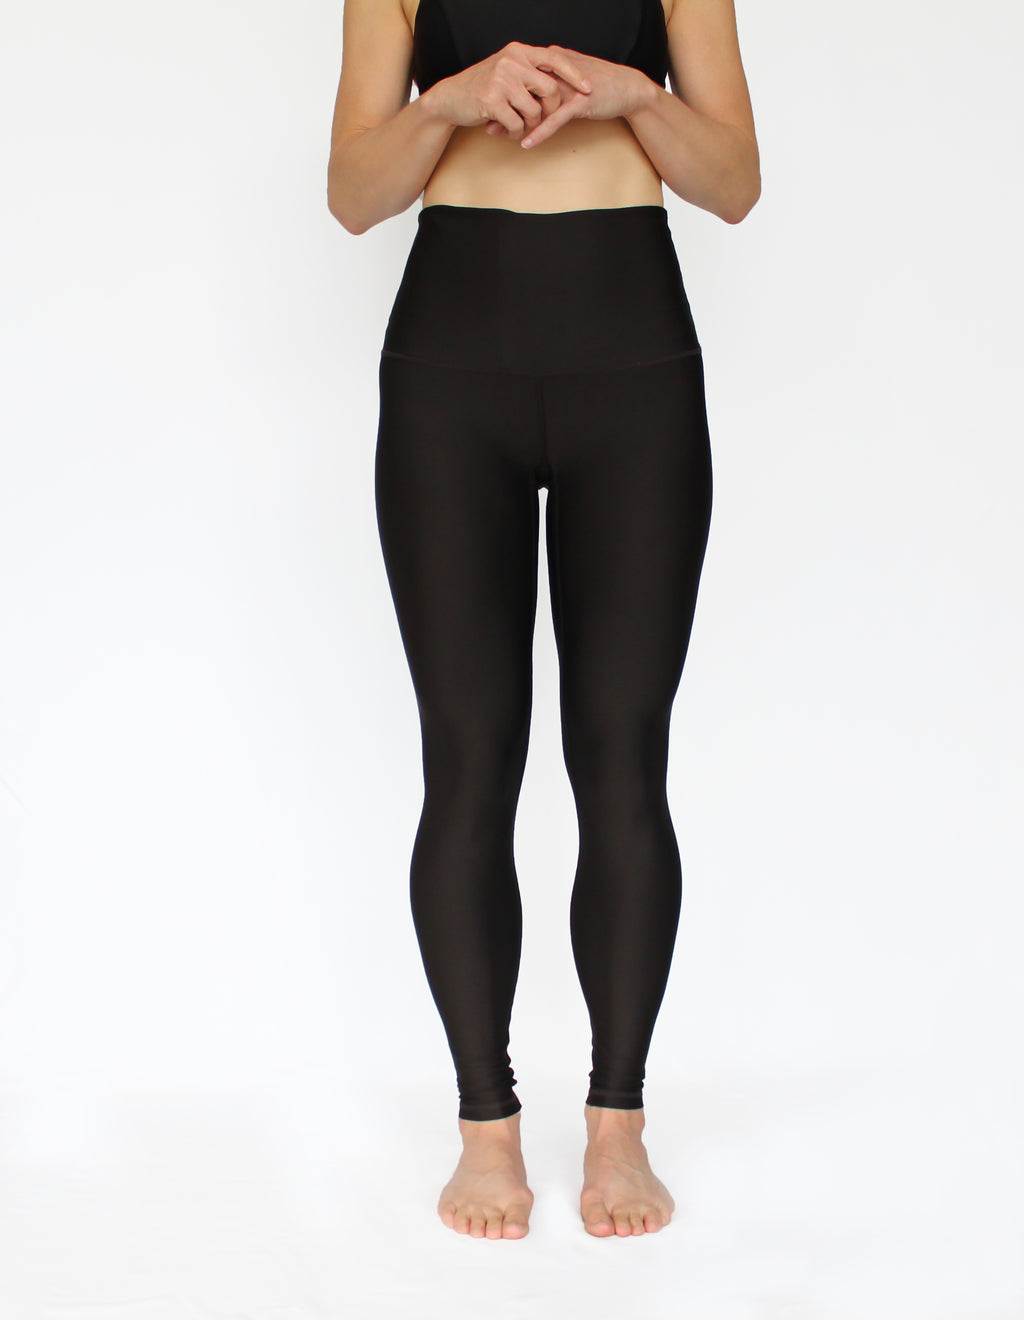 The Give Back with Black Athletic Tights - LAST PAIRS: Sizes XXS & M